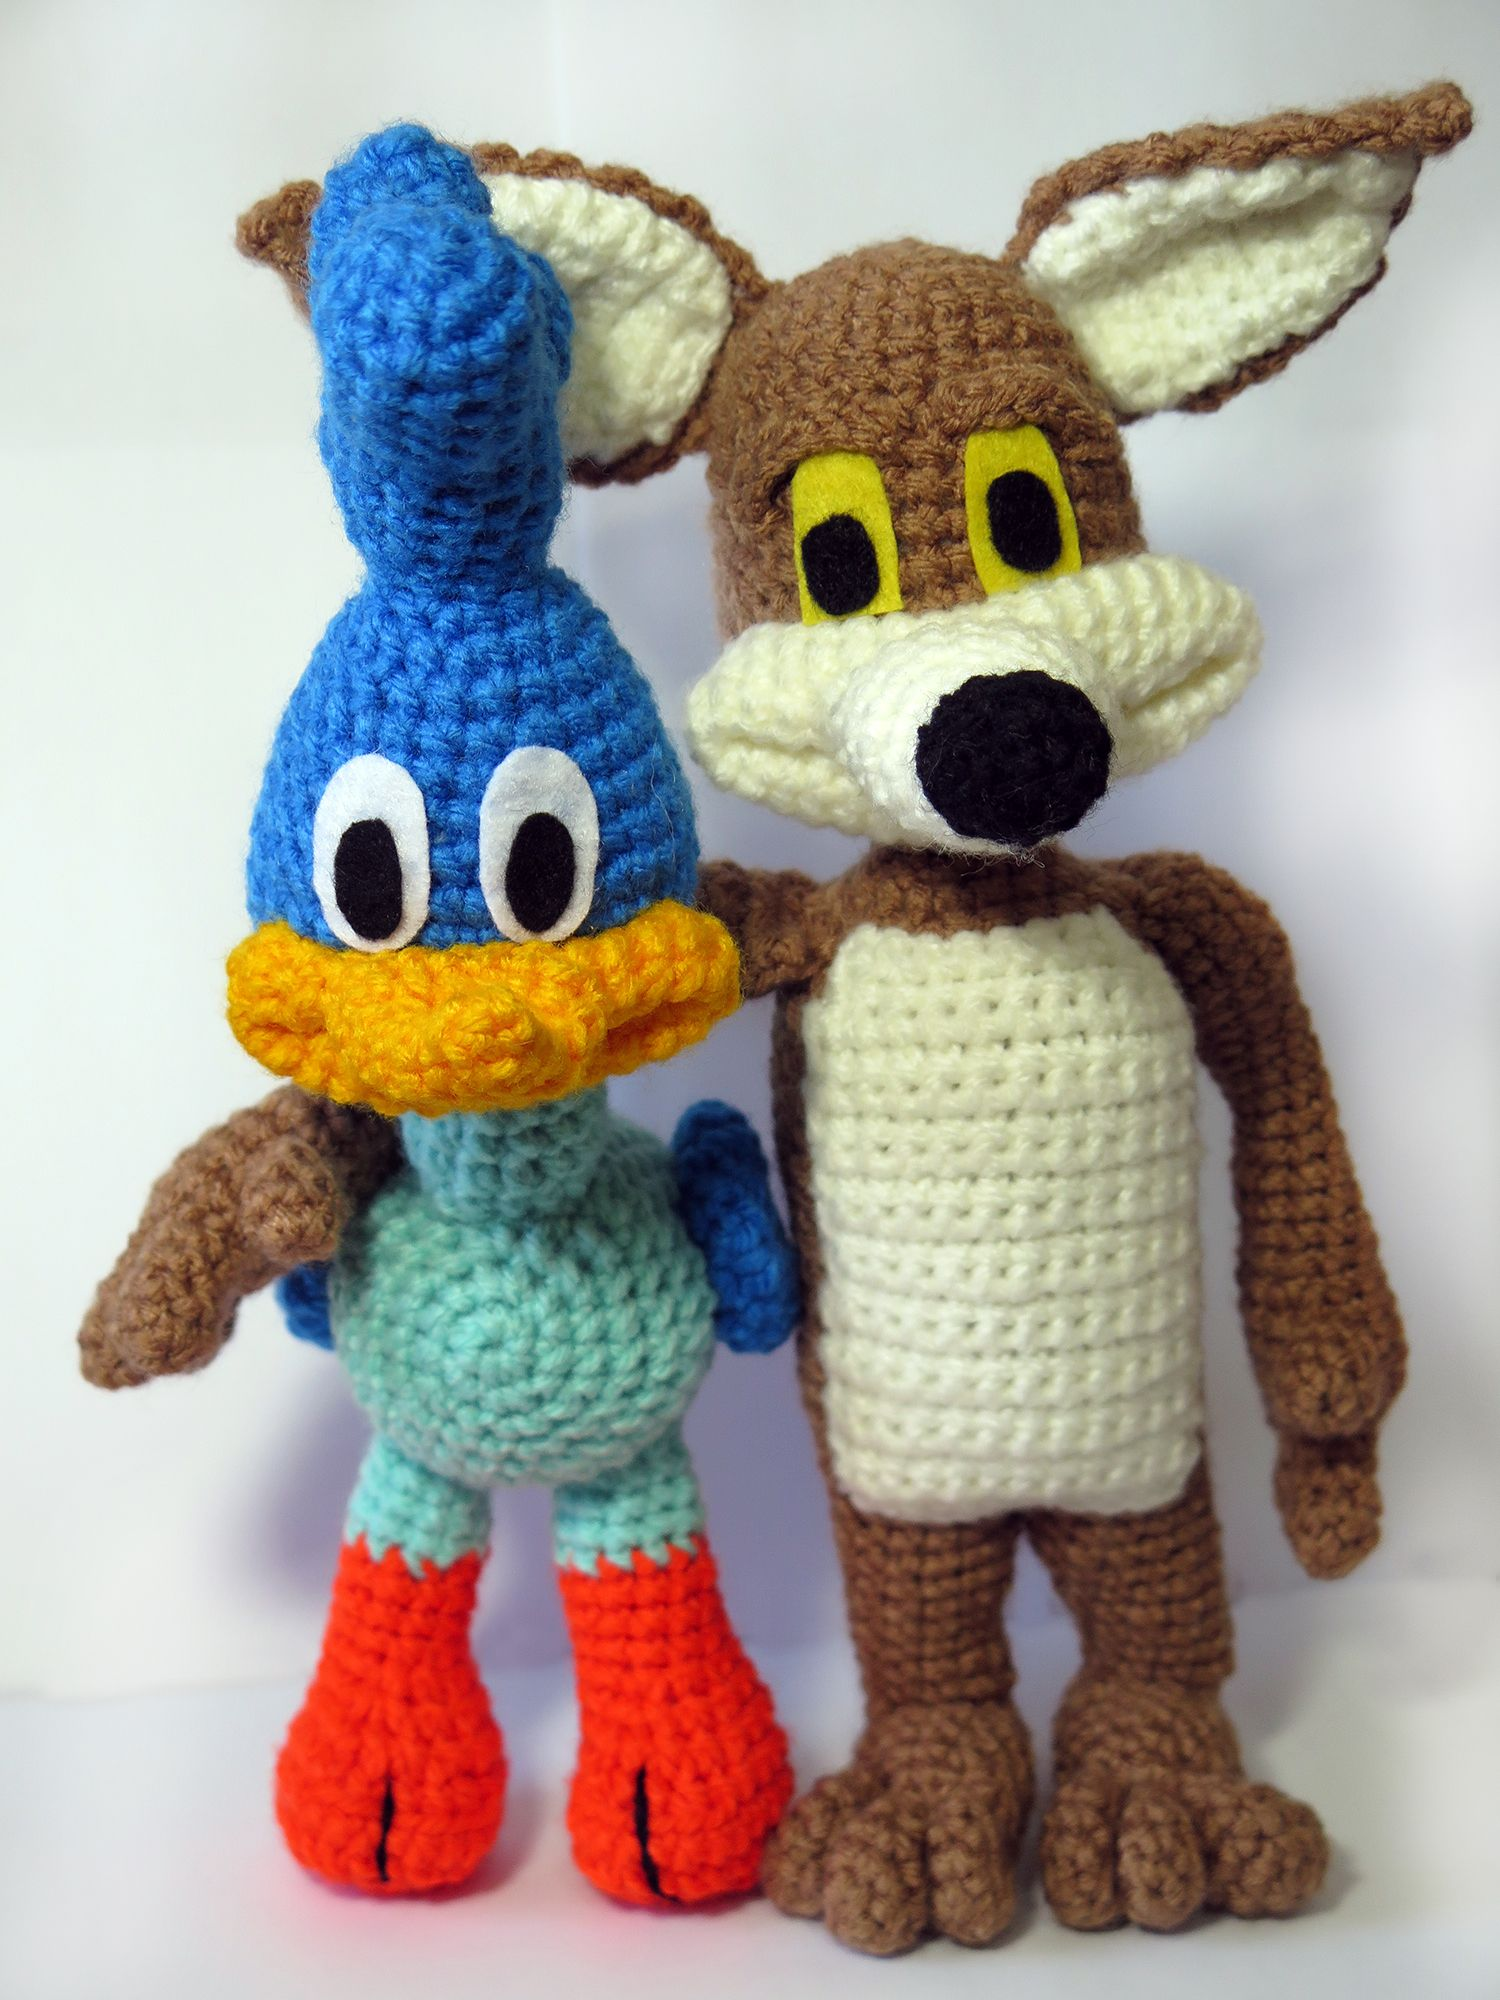 Crochet Amigurumi Road Runner And Coyote By Orangefrau Crochet Amigurumi Crochet Toys Patterns Crochet Disney